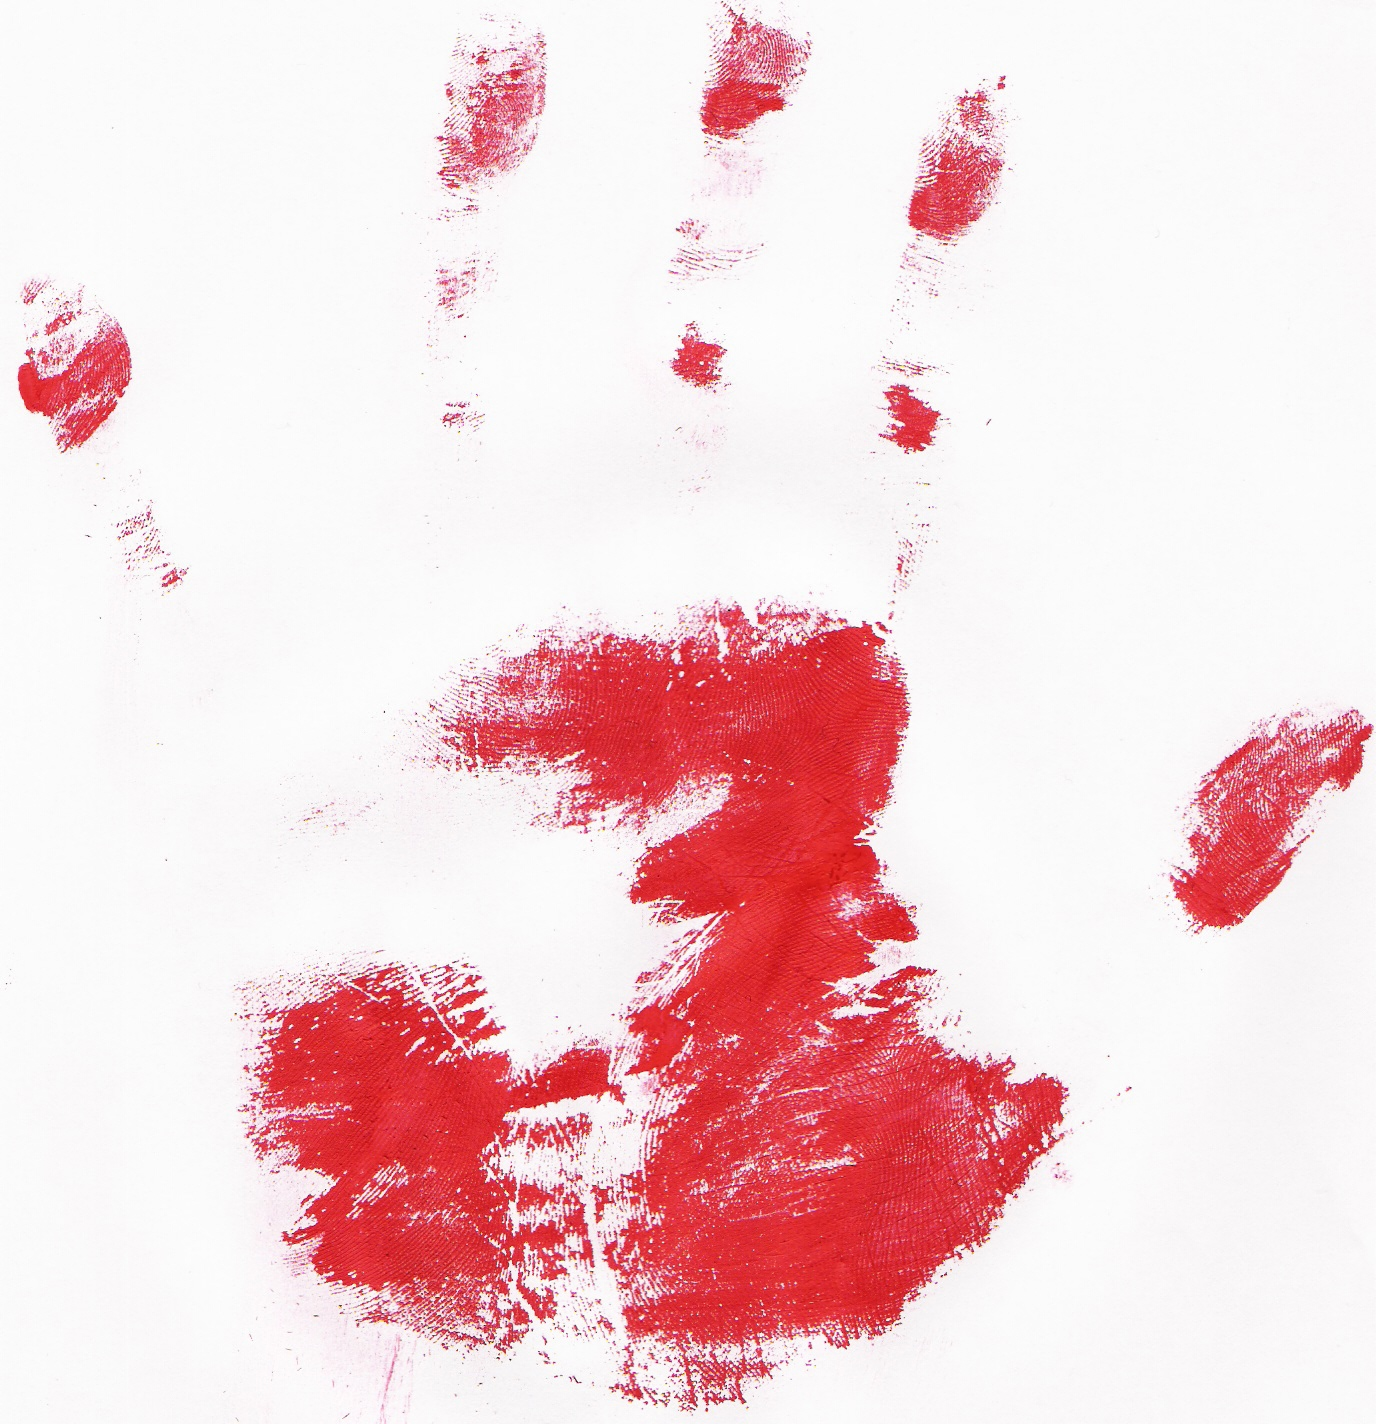 Bloody Handprint by RustyDuck on DeviantArt